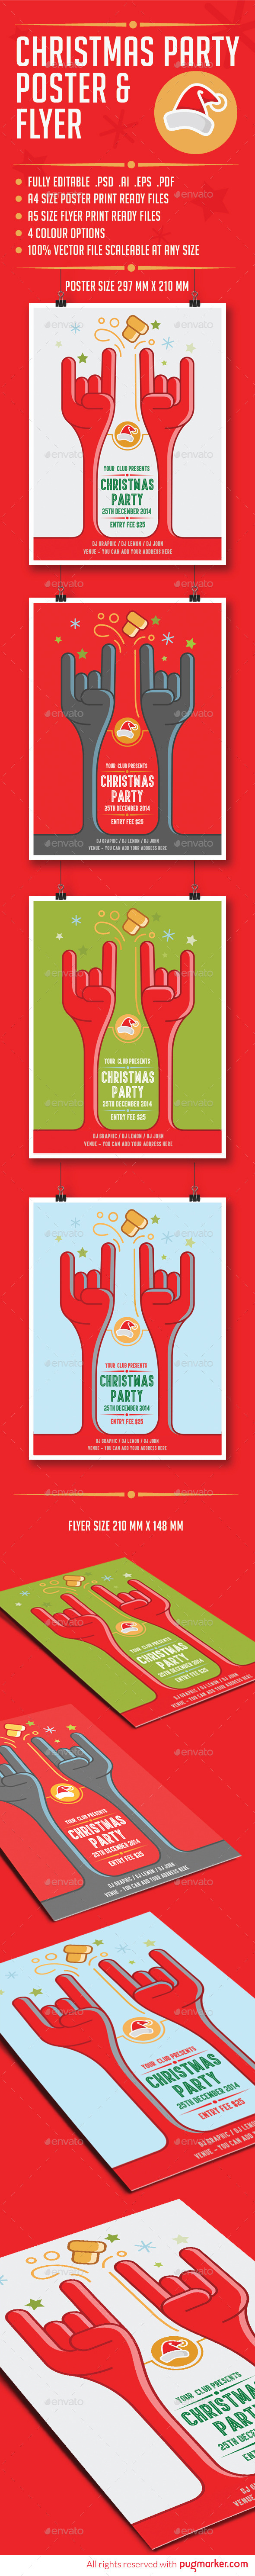 GraphicRiver Christmas Party Invitation Poster & Flyer 9485503